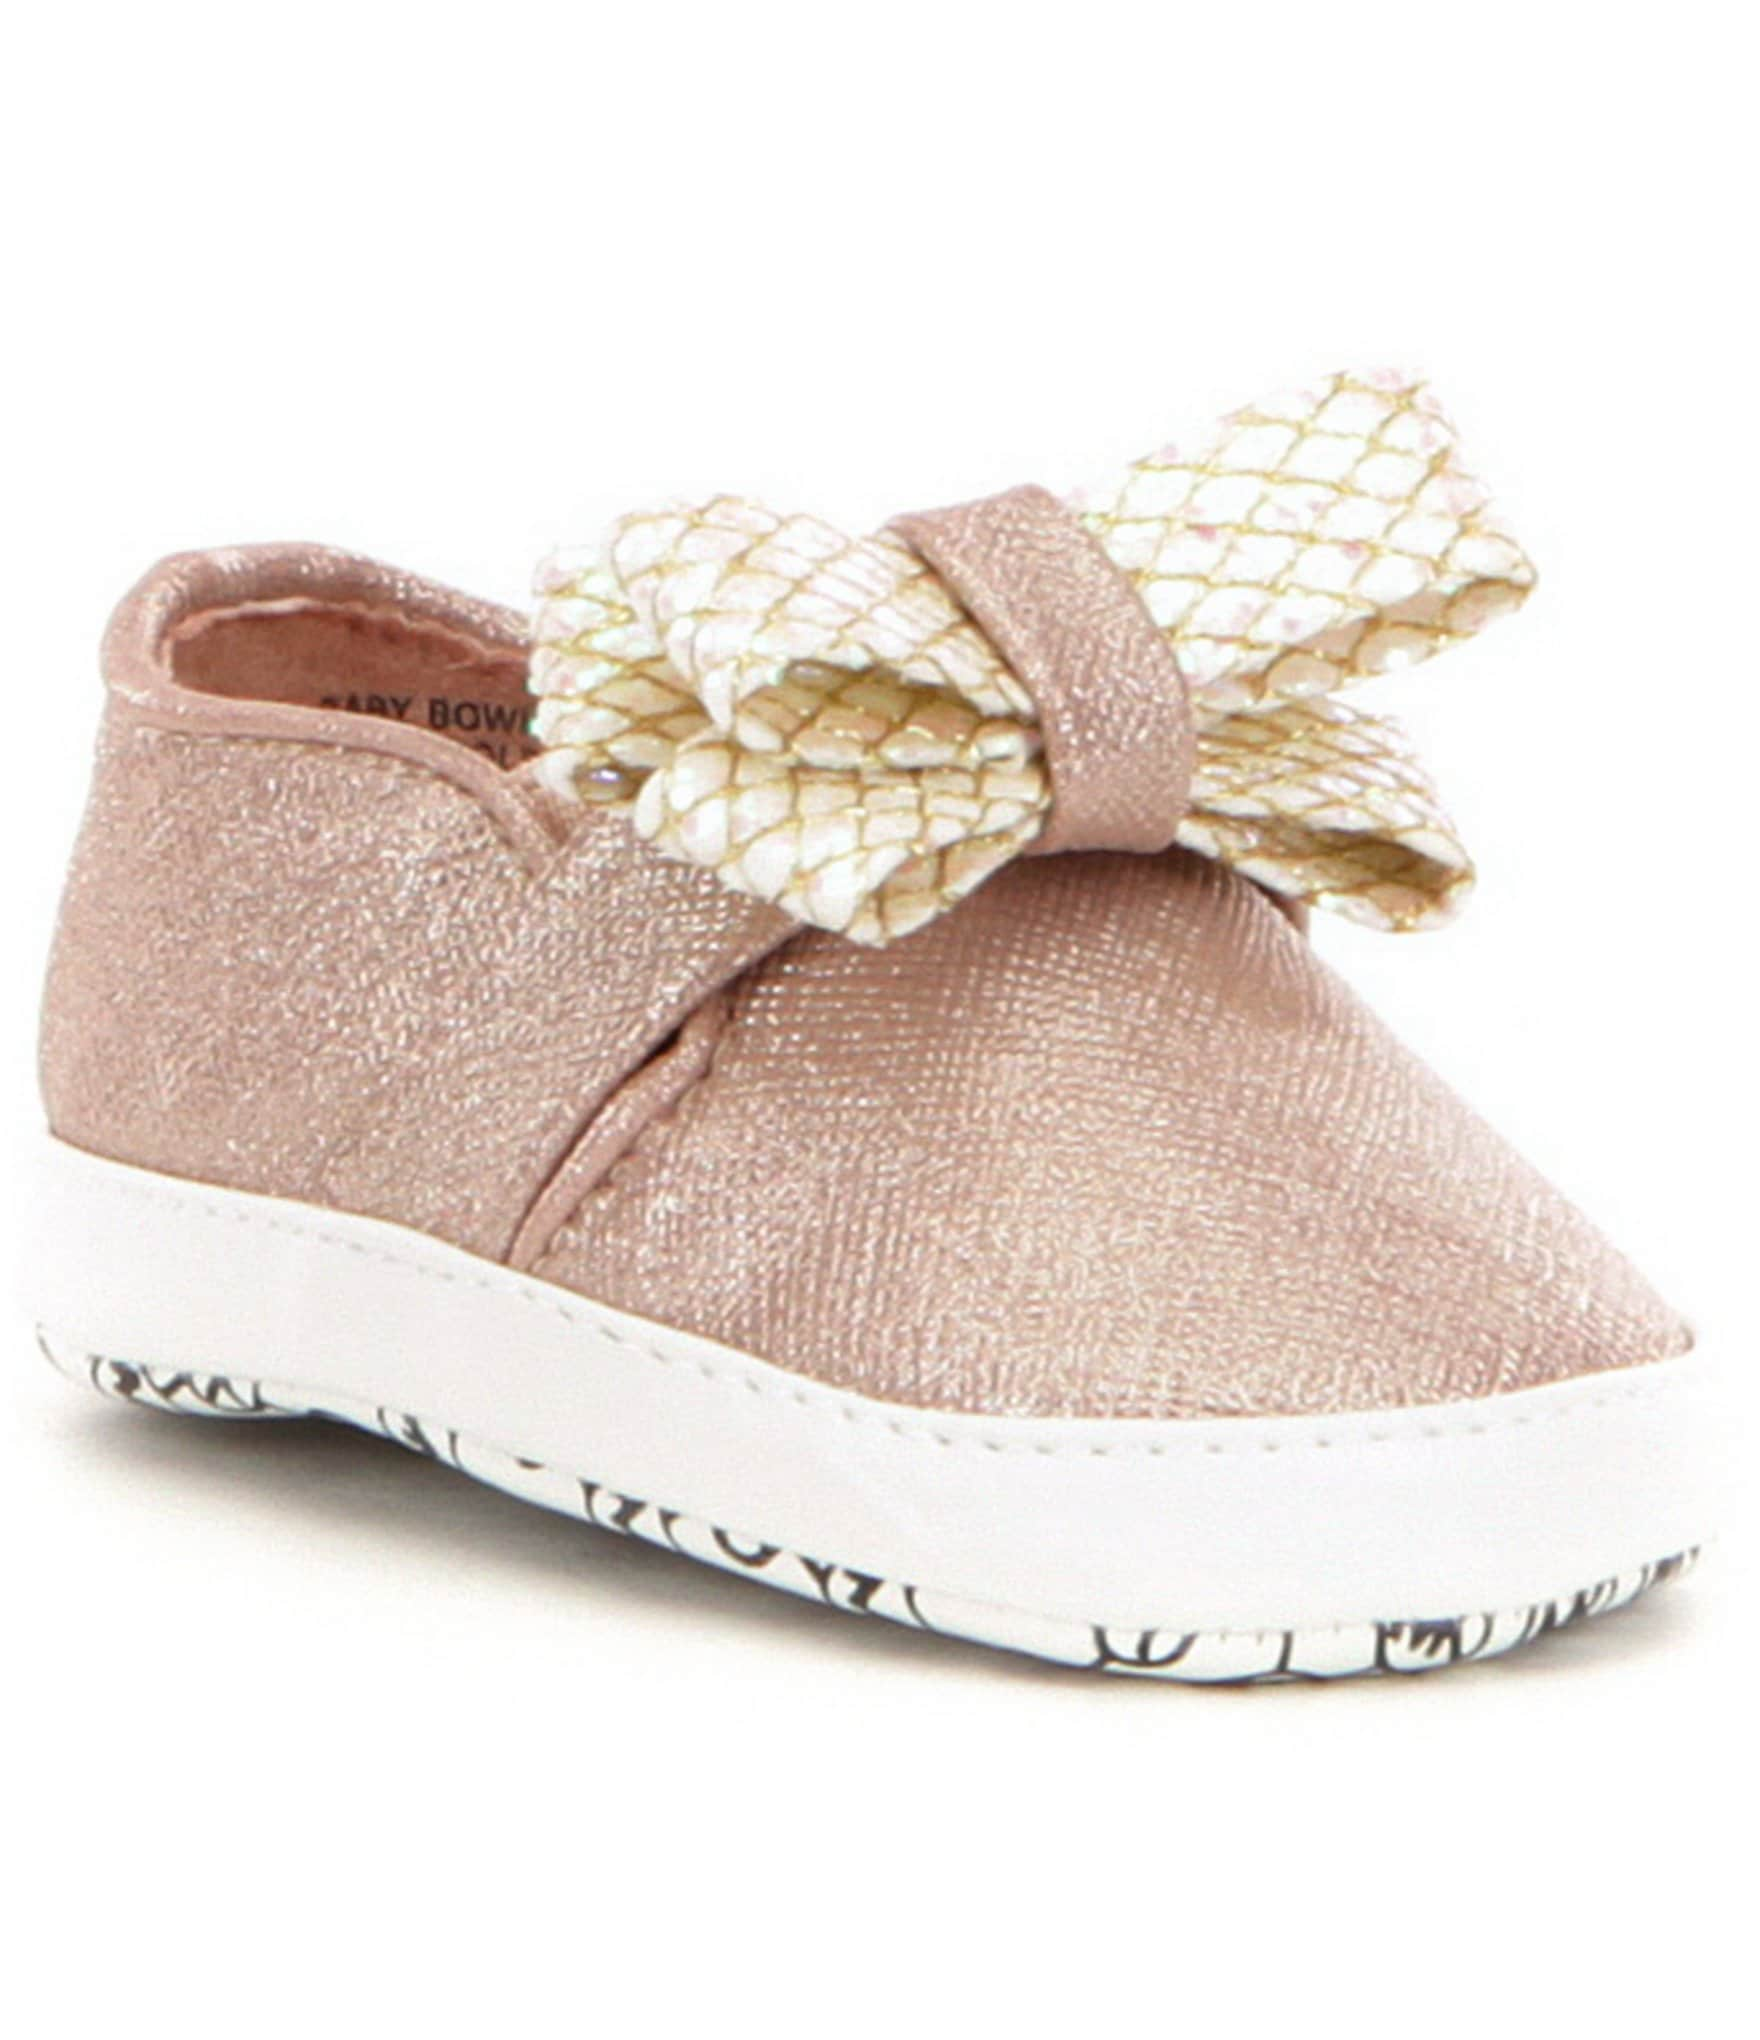 Buy gold michael kors sneakers > OFF78% Discounted